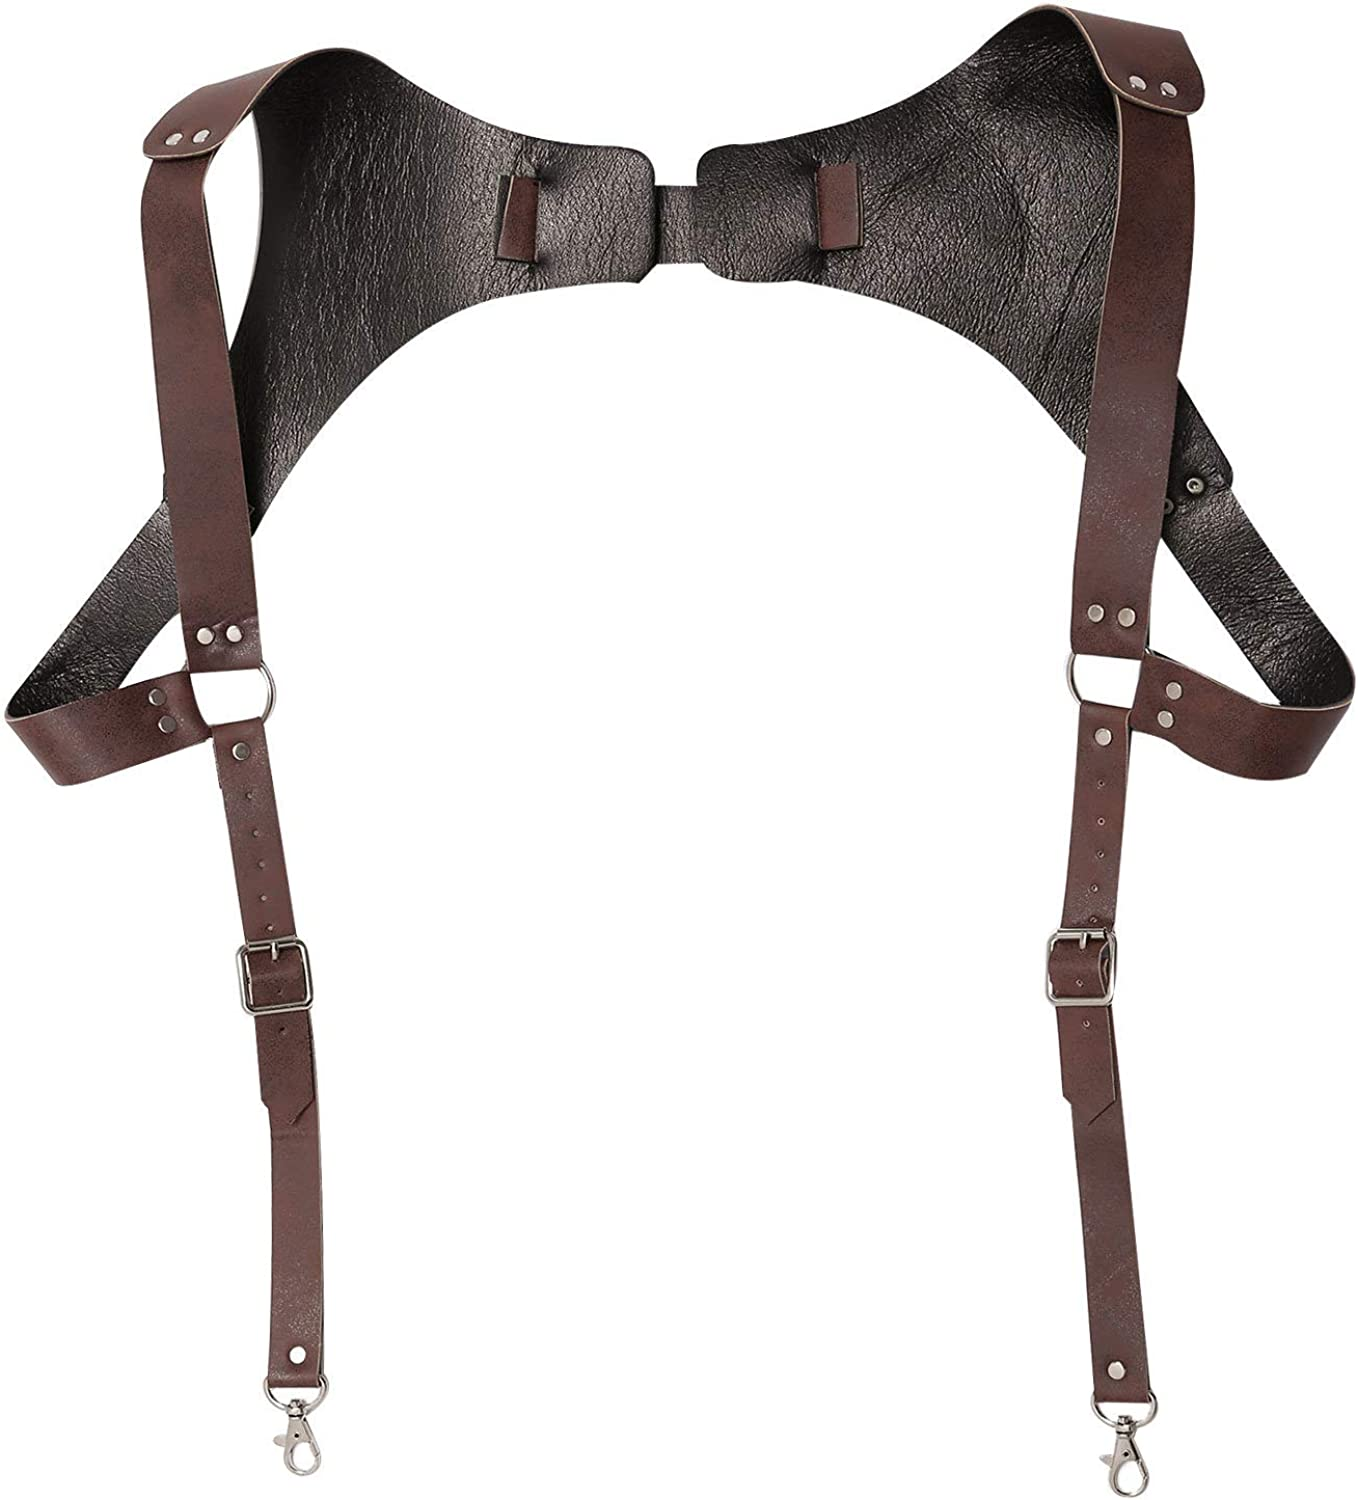 winying Vintage Renaissance Adjustable Men's Leather Suspenders with Heavy Duty Strong Metal Clips for Men Club Role Play